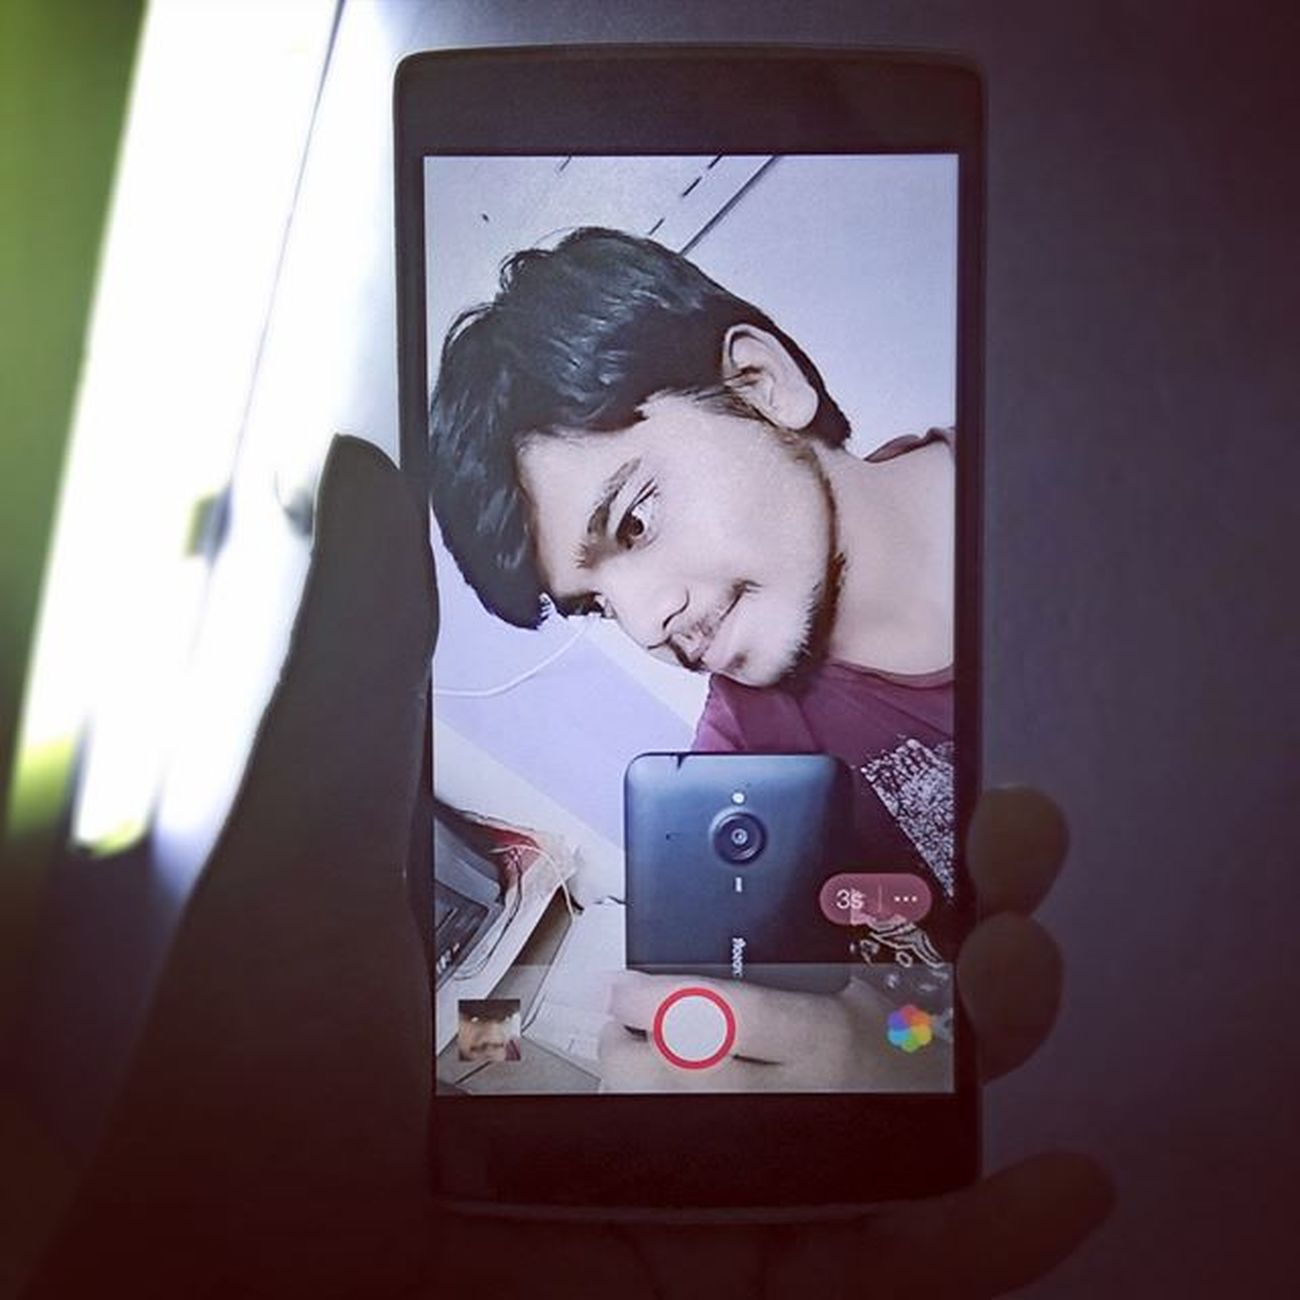 Selfietime Selfiebehindthescenes on my Lumia640xl Mirror as Oneplusone Lumia640xlphotography 😏